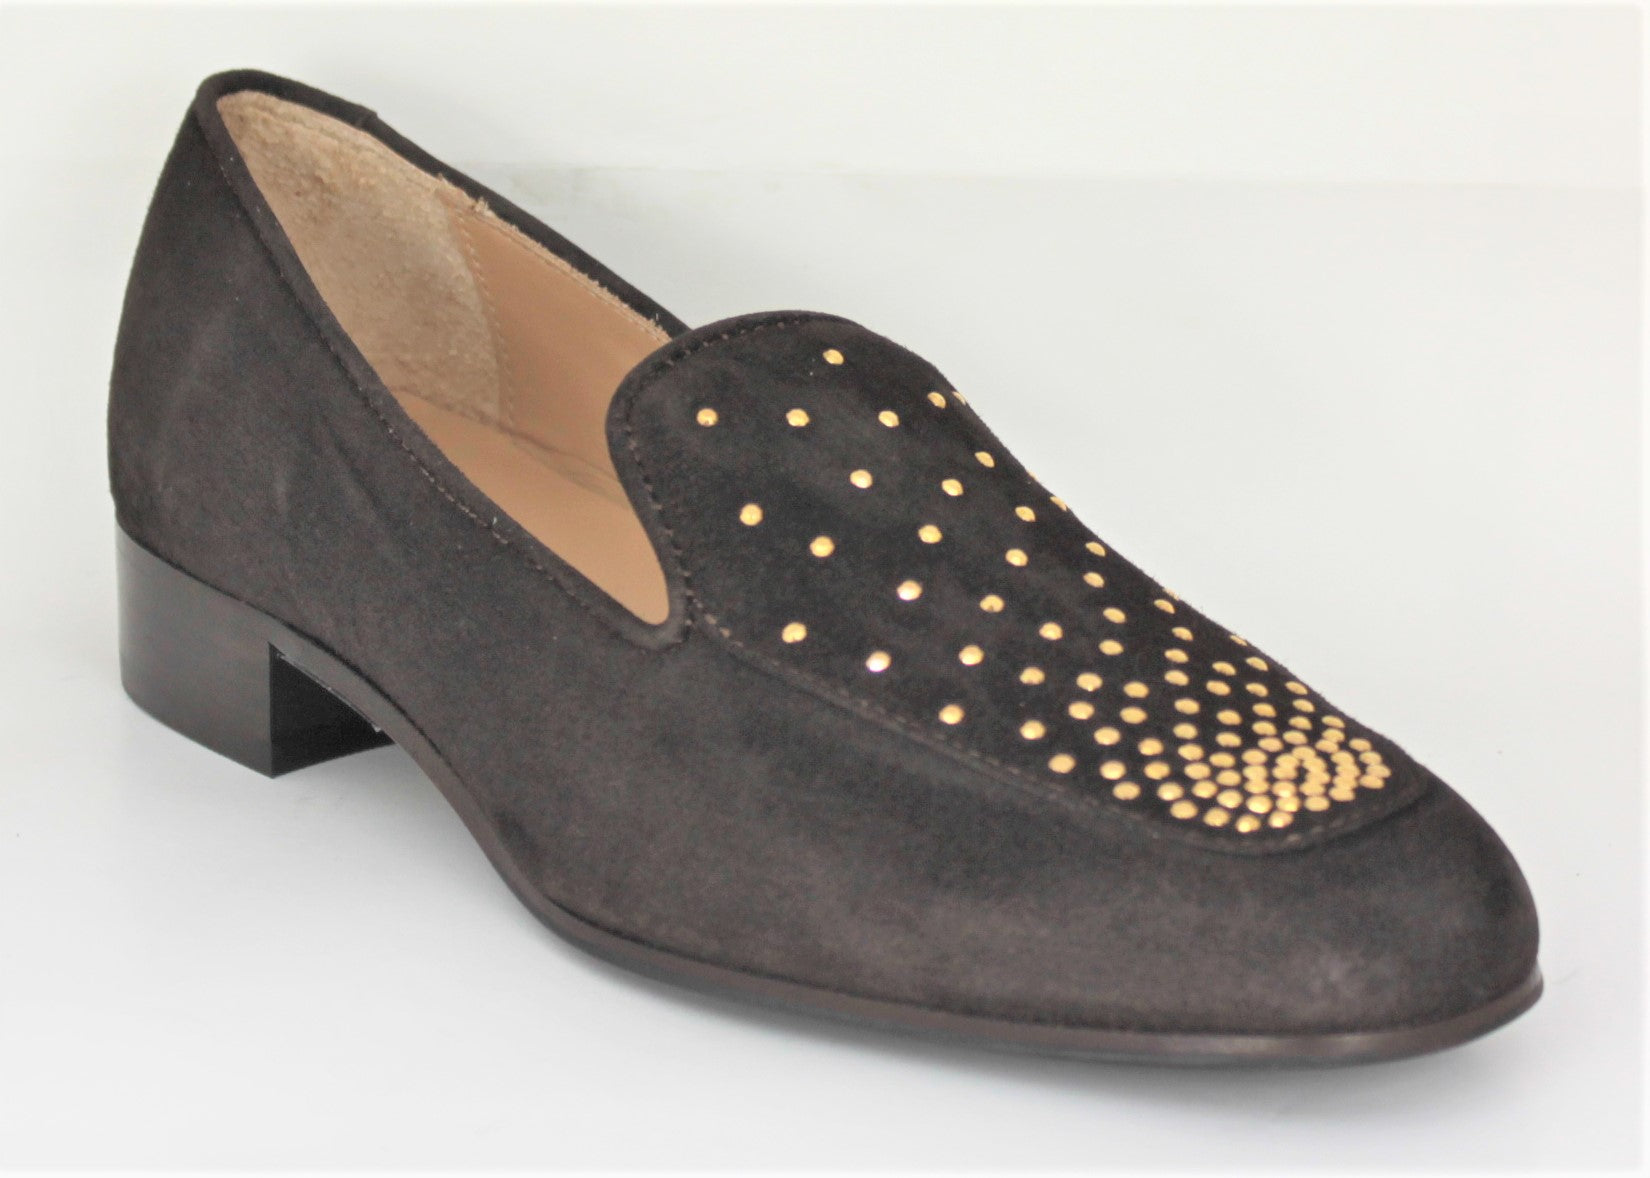 Myla Low Heel Loafer With Stud Trim